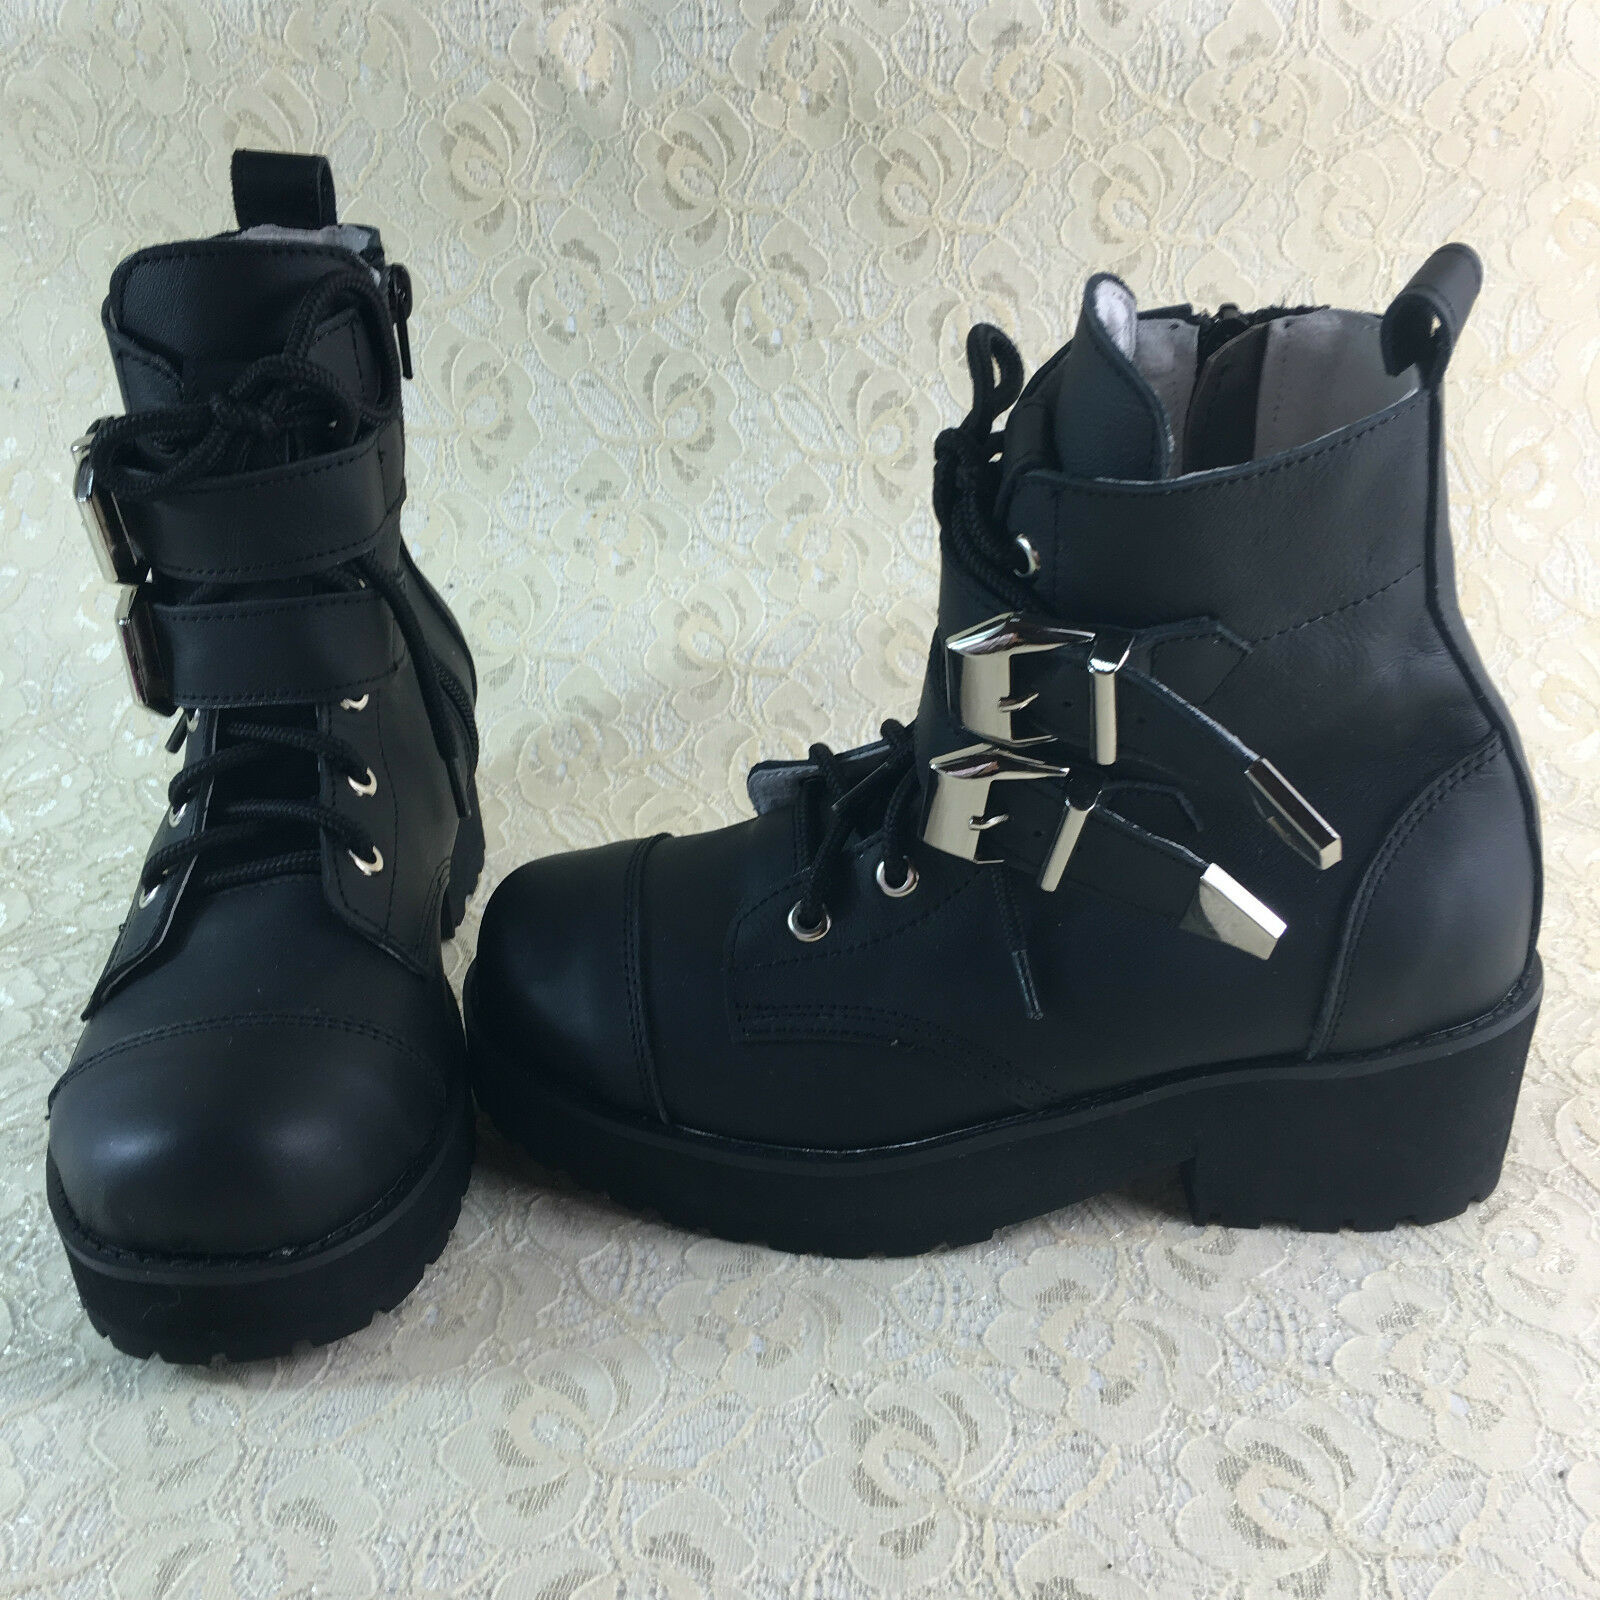 Vintage Gothic Steam-Punk Goth Steam-Punk Gothic Rock mujer zapatos botas botasetten Kostüm Neu 0bed7a